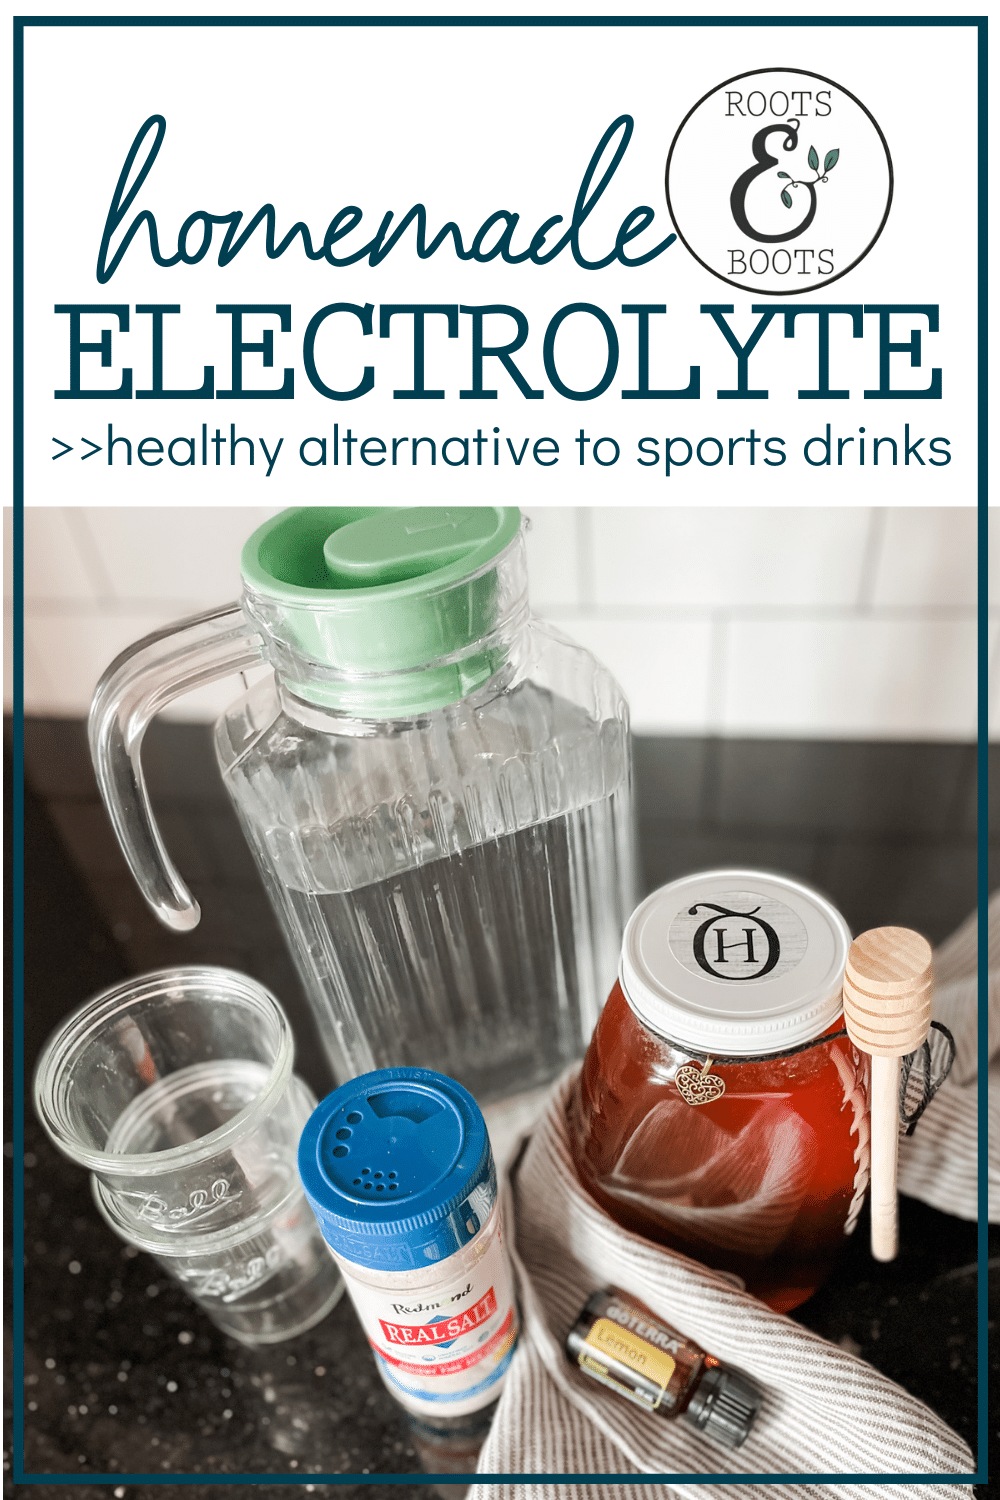 Easy Homemade Electrolyte Drink | Roots & Boots